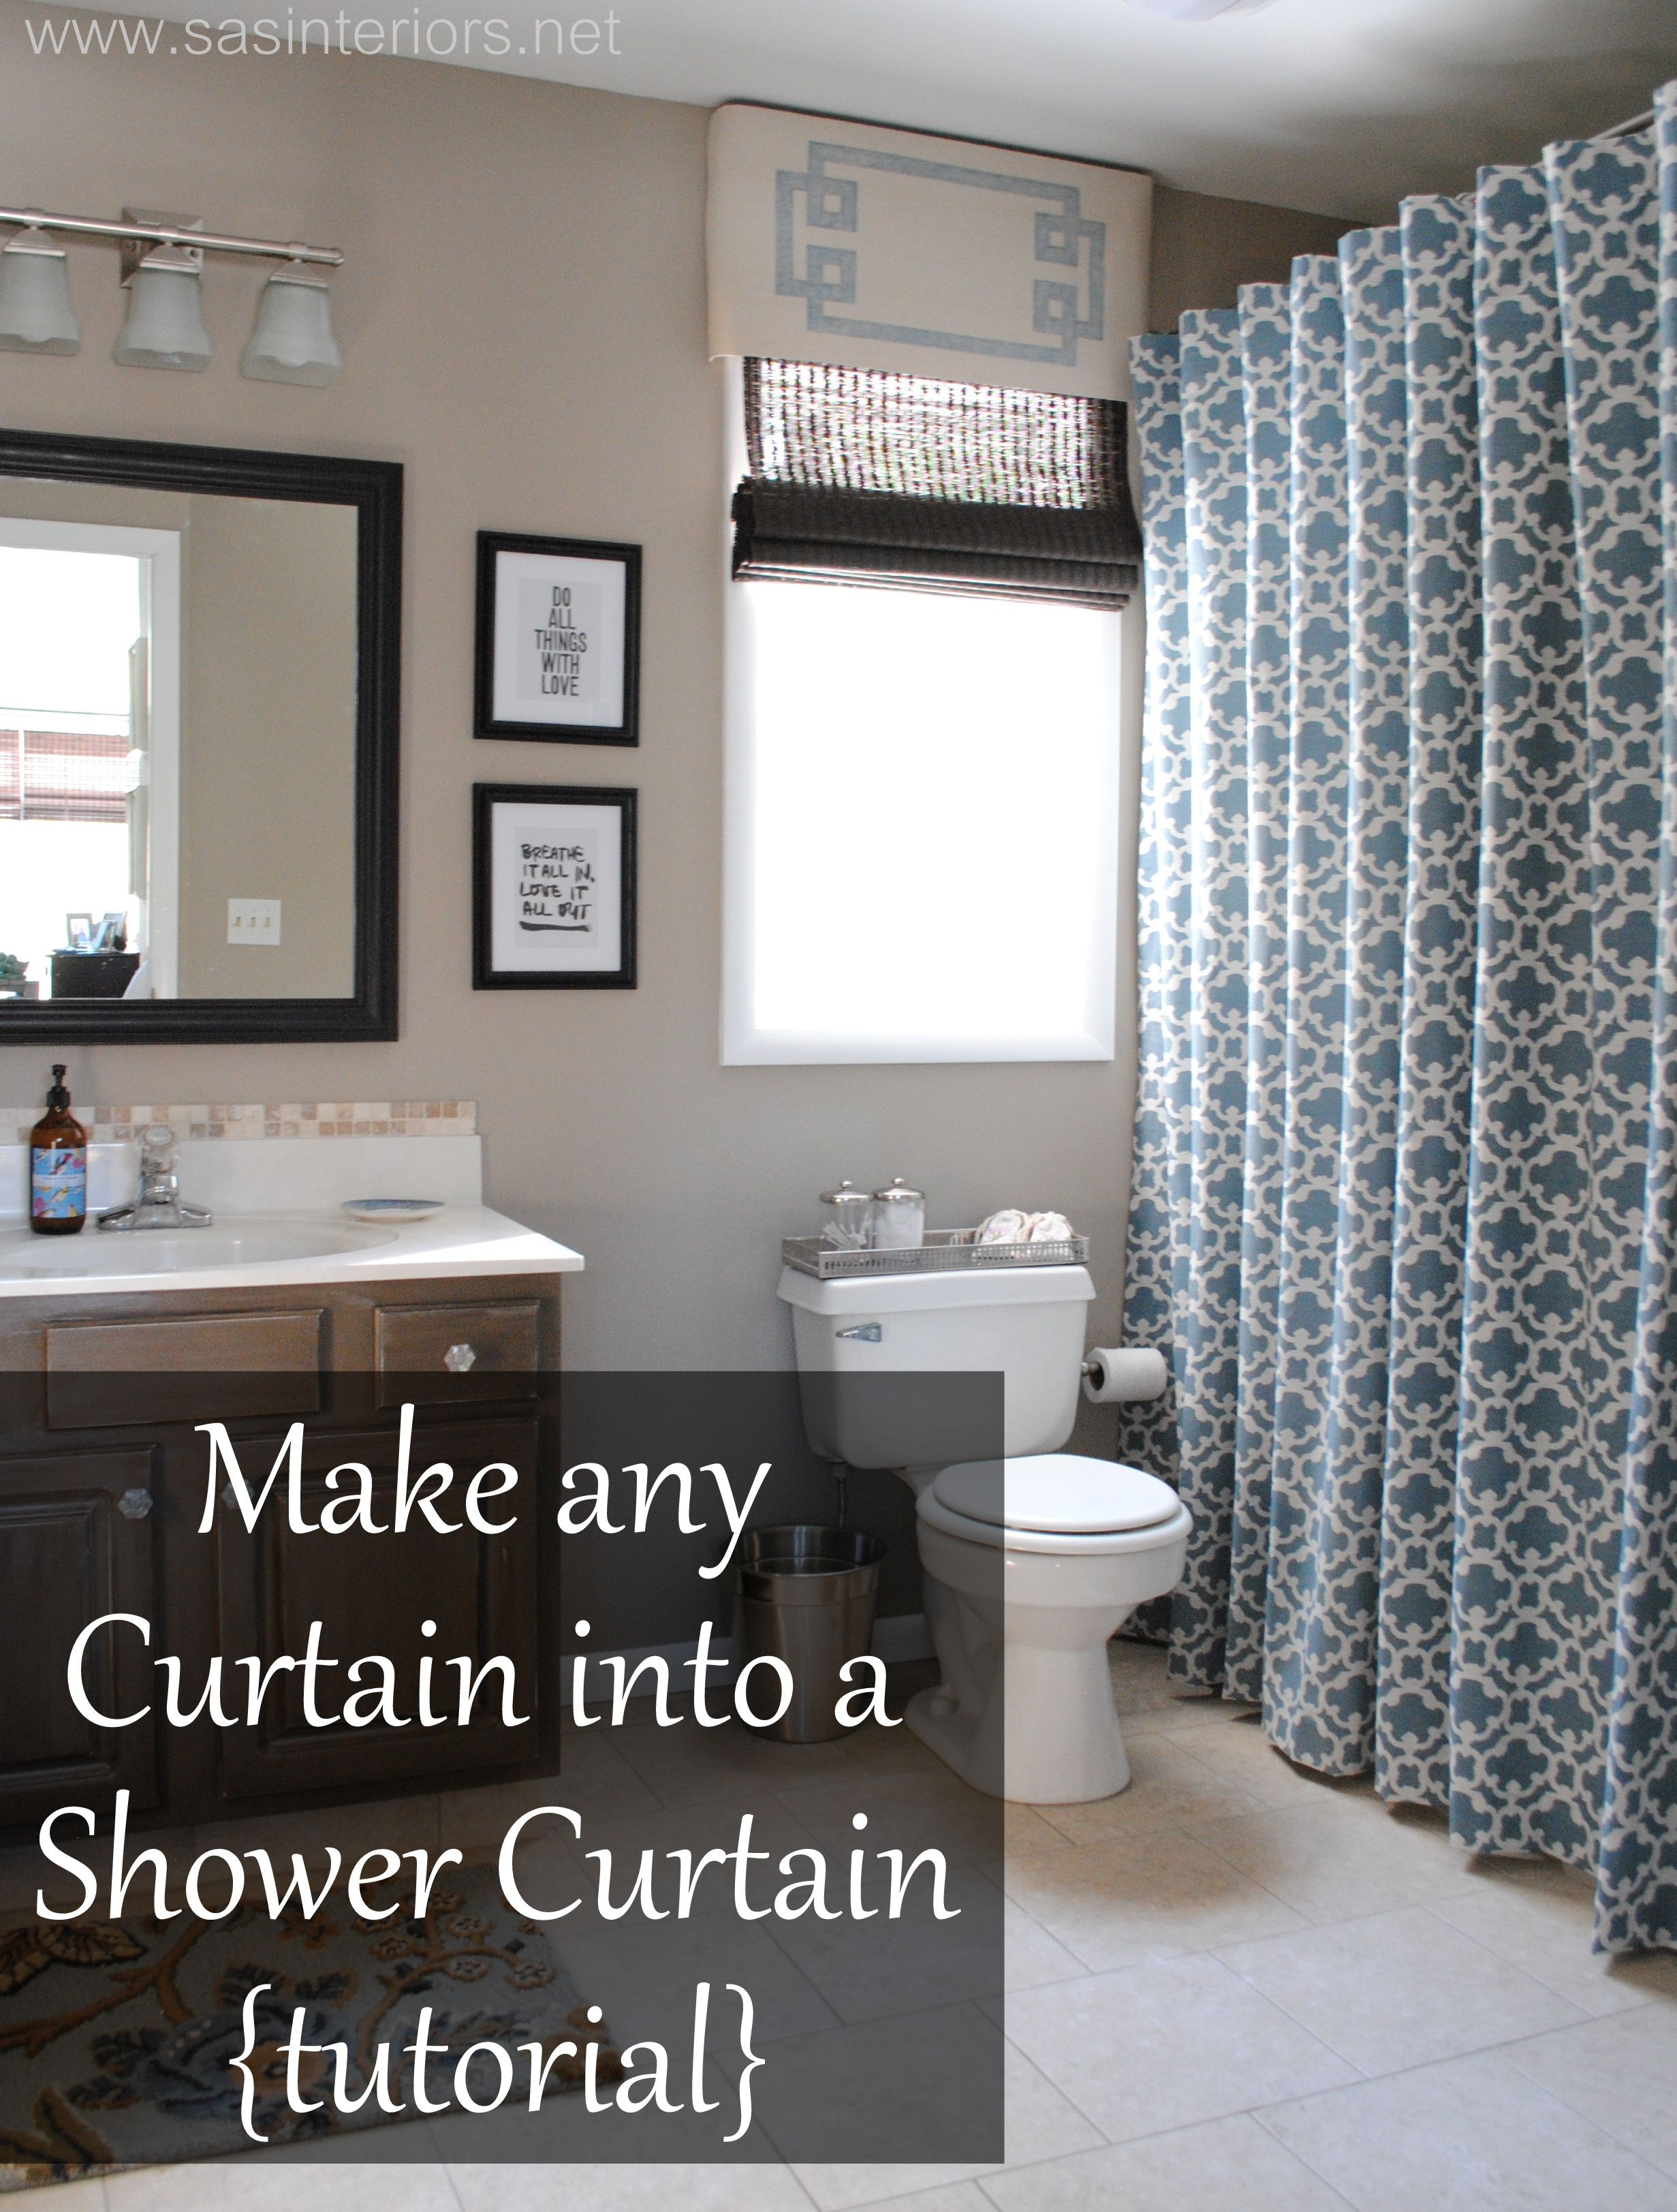 How To Make Shower Curtain How To Make Any Curtain Into A Shower Curtain Diy In 2019 Diy